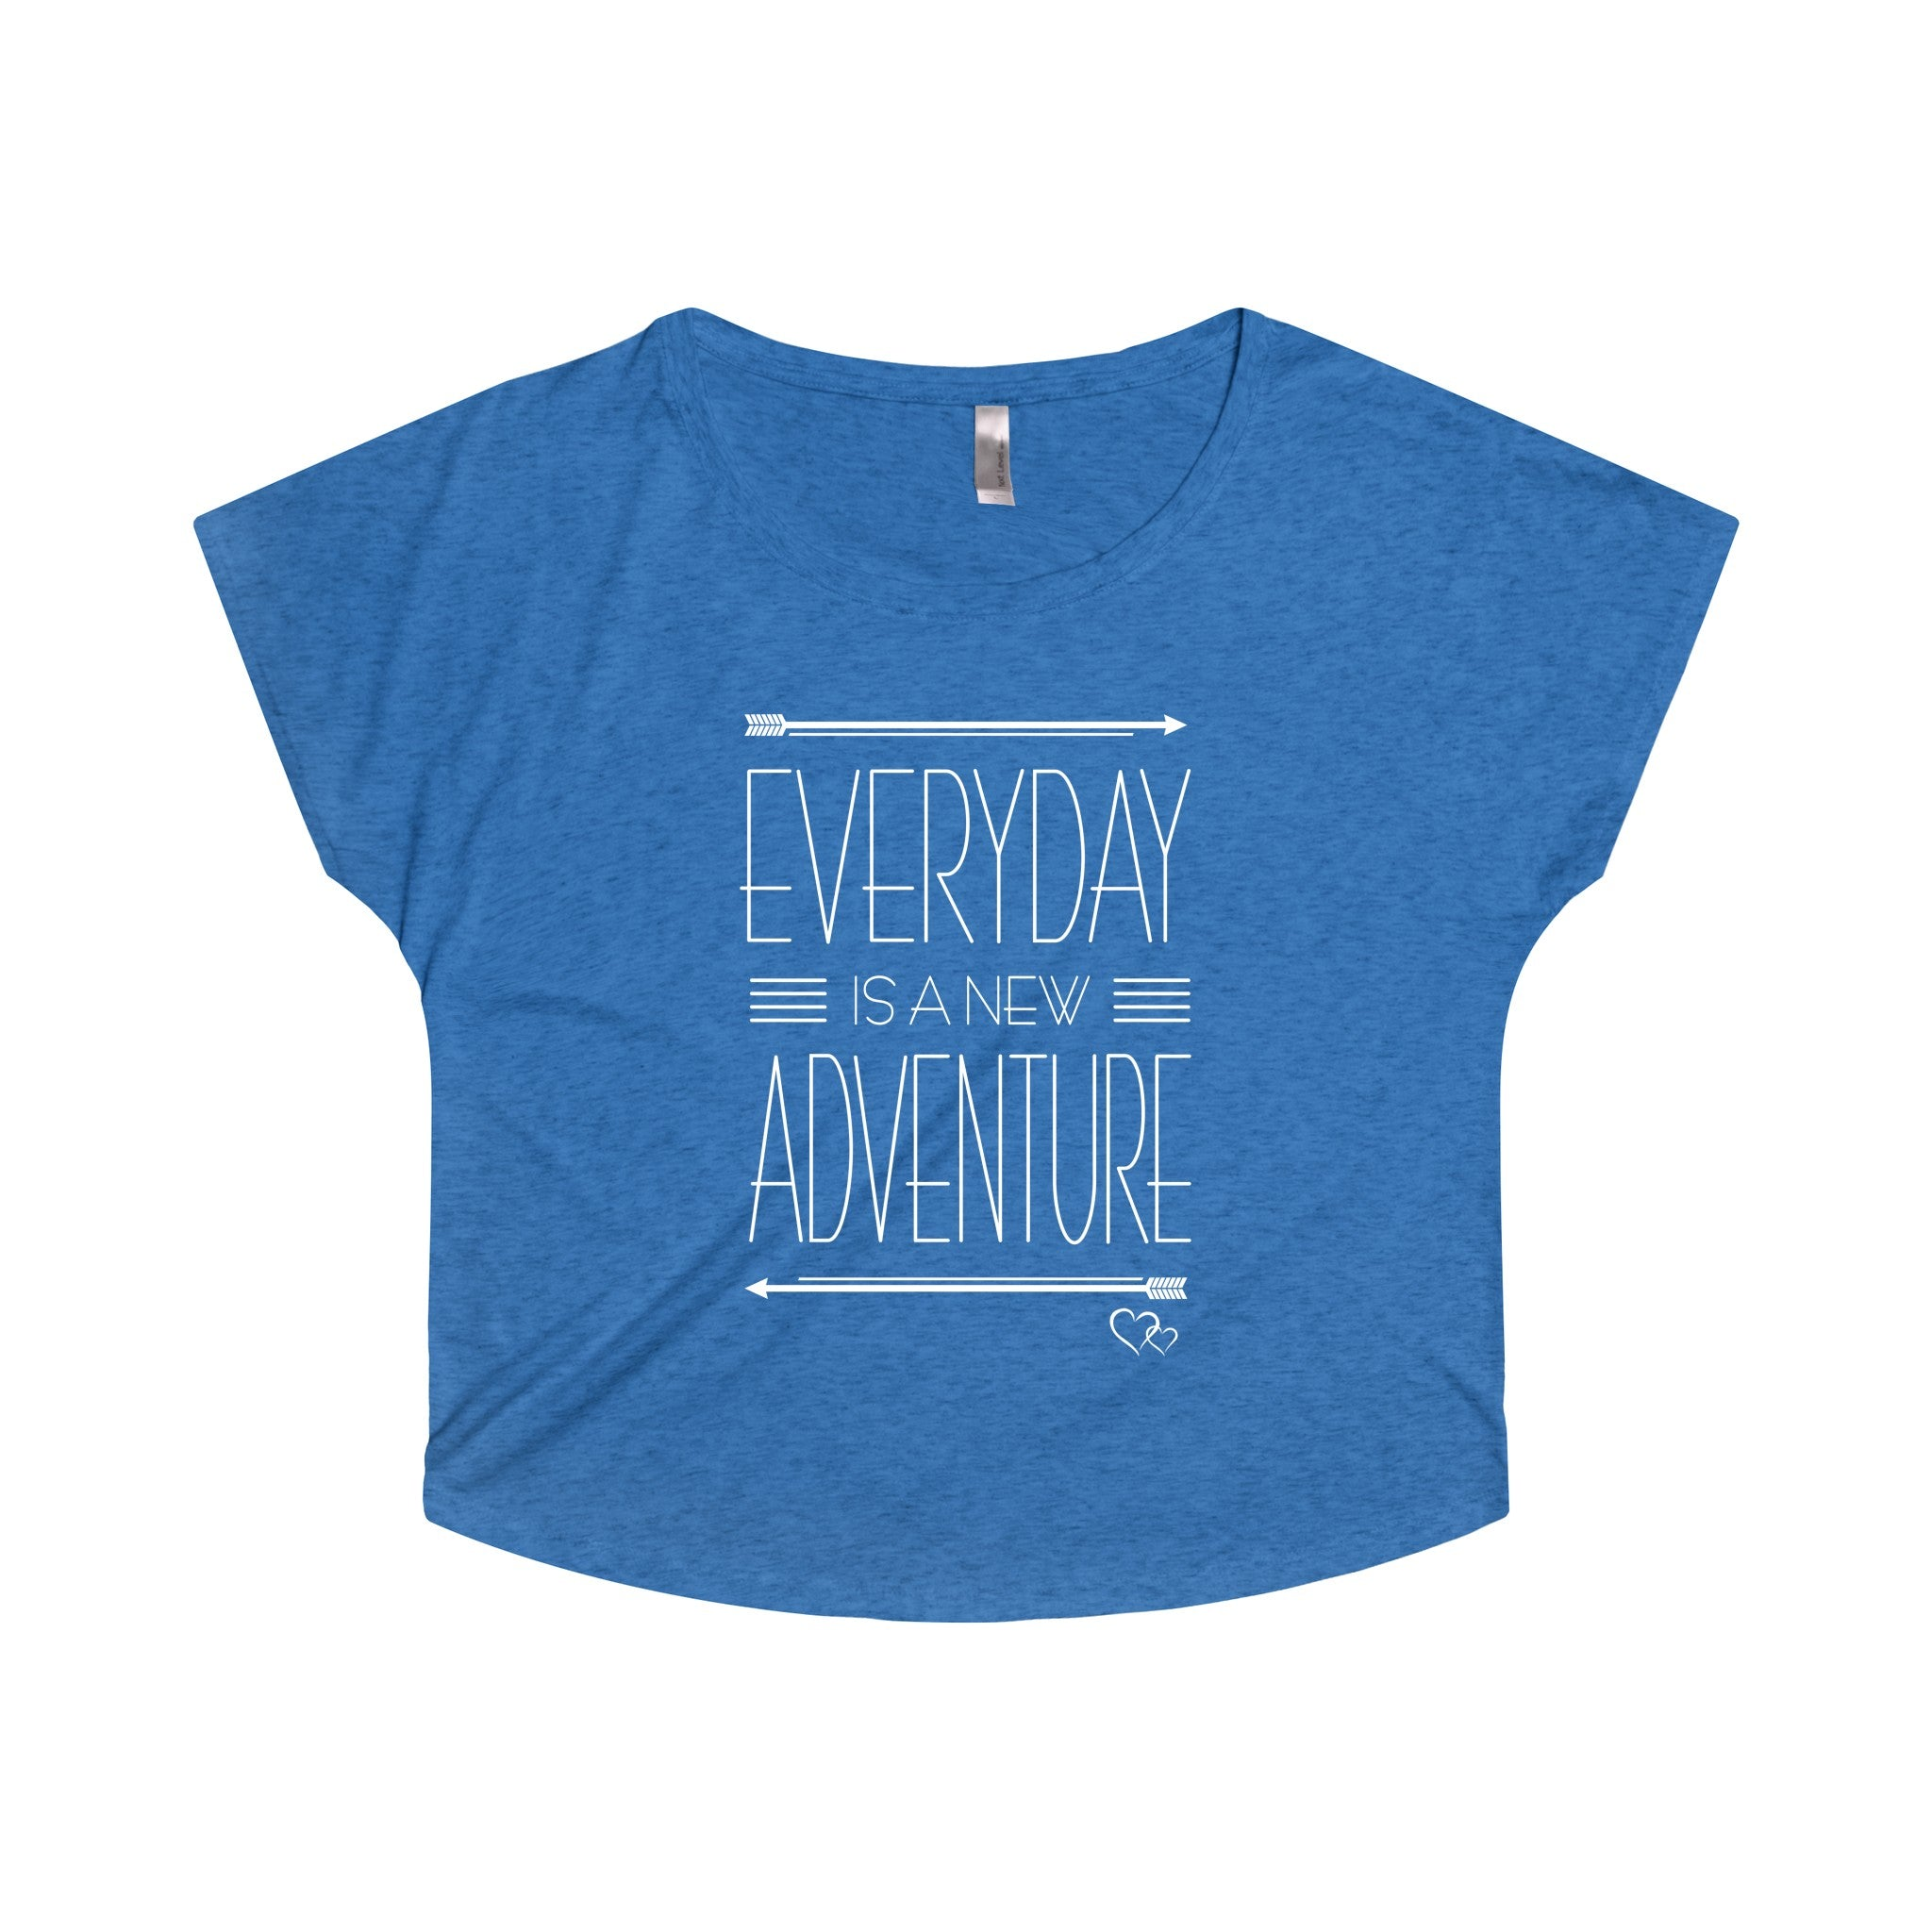 EVERYDAY ADVENTURE - Loose Dolman Sleeve